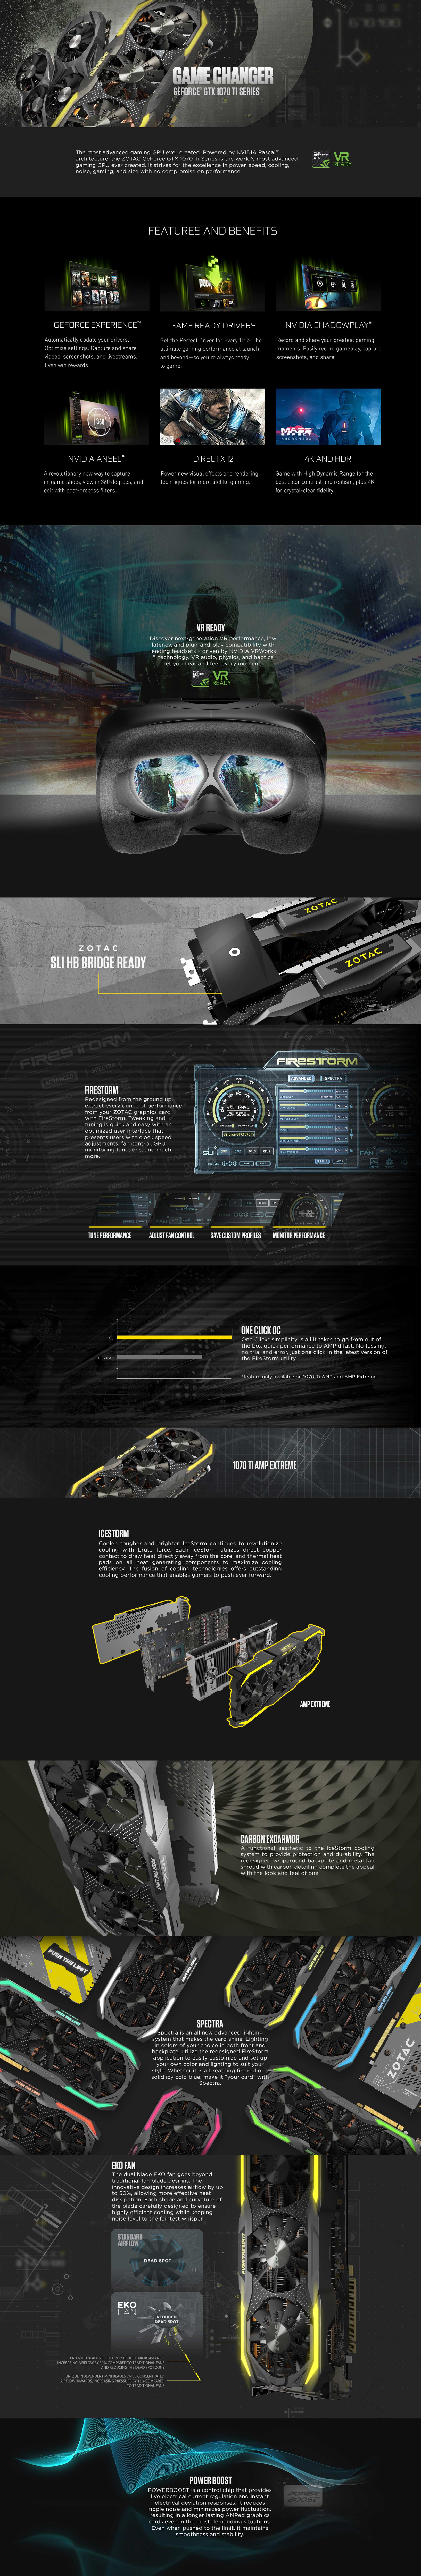 1070ti_amp_extreme_overview.jpg